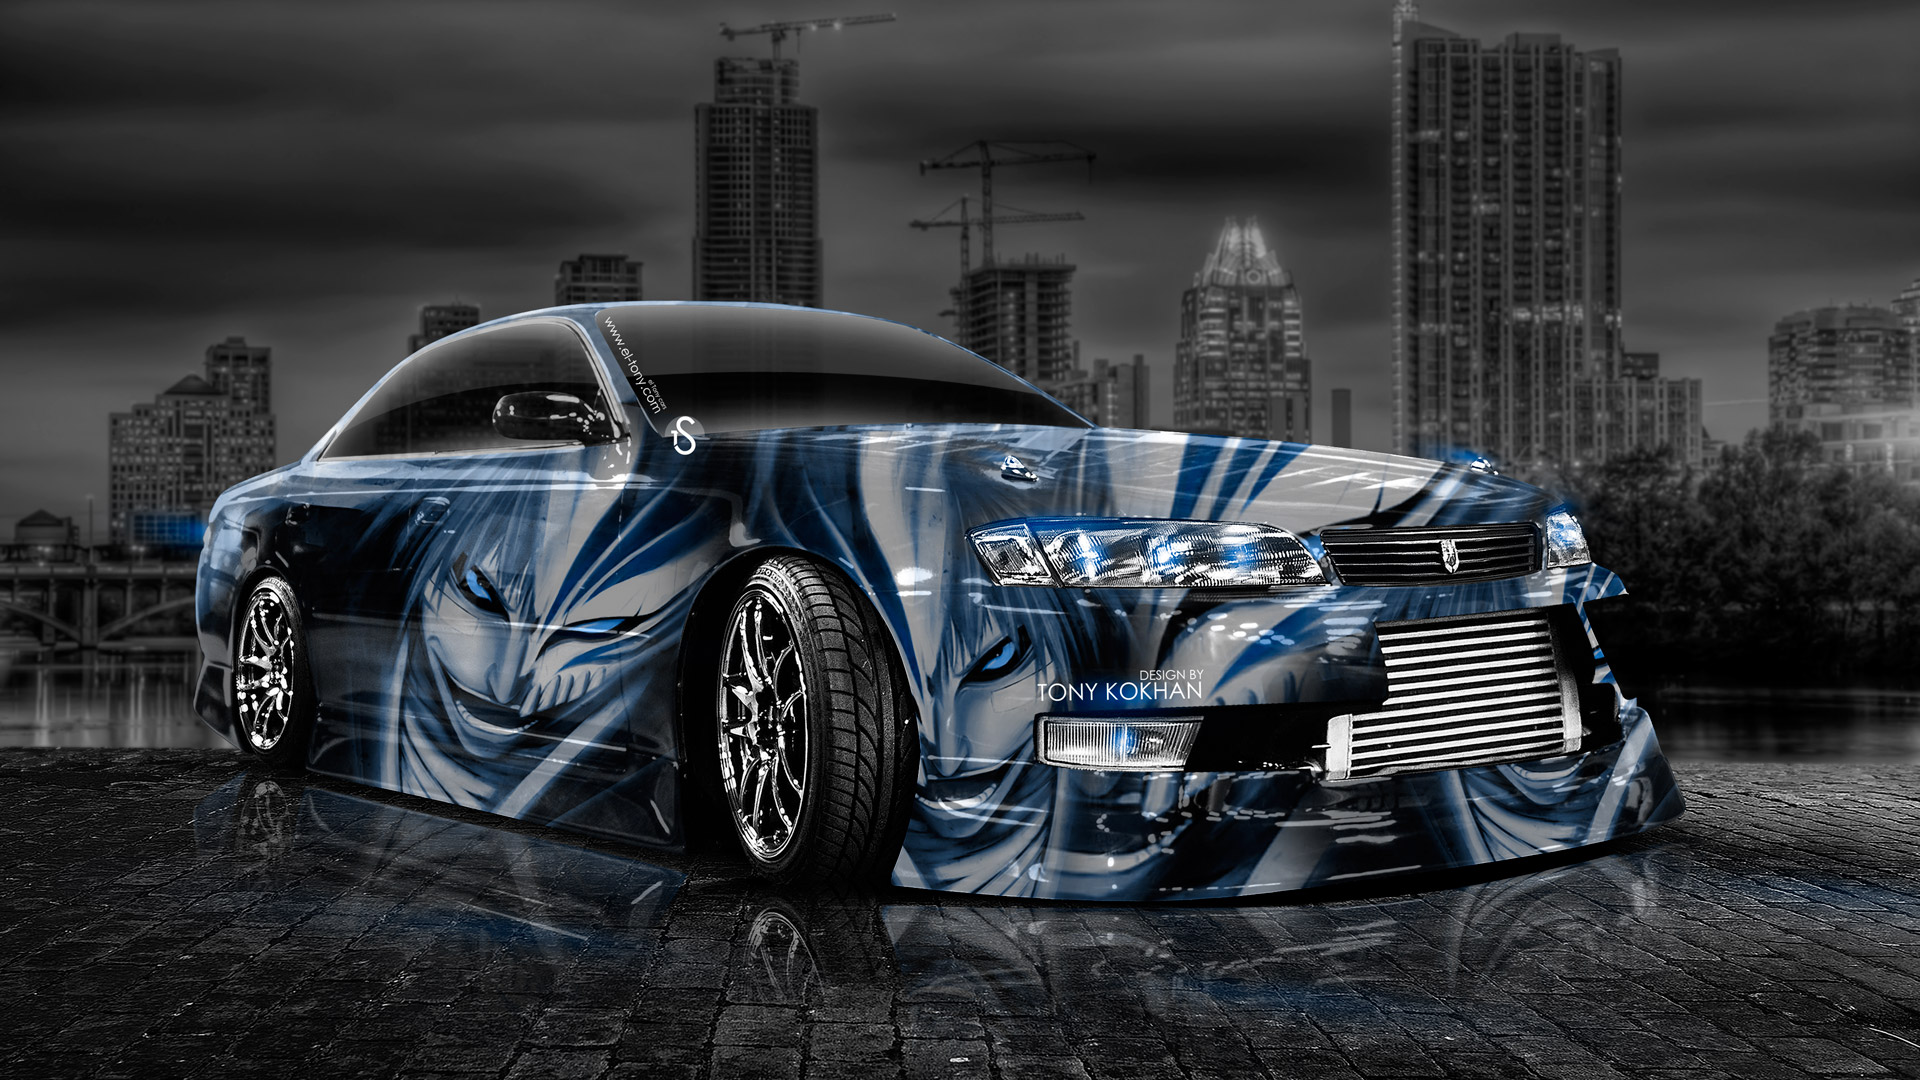 Toyota Mark 2 Jzx100 Jdm Crystal City Car 2014 Blue Neon Design By .